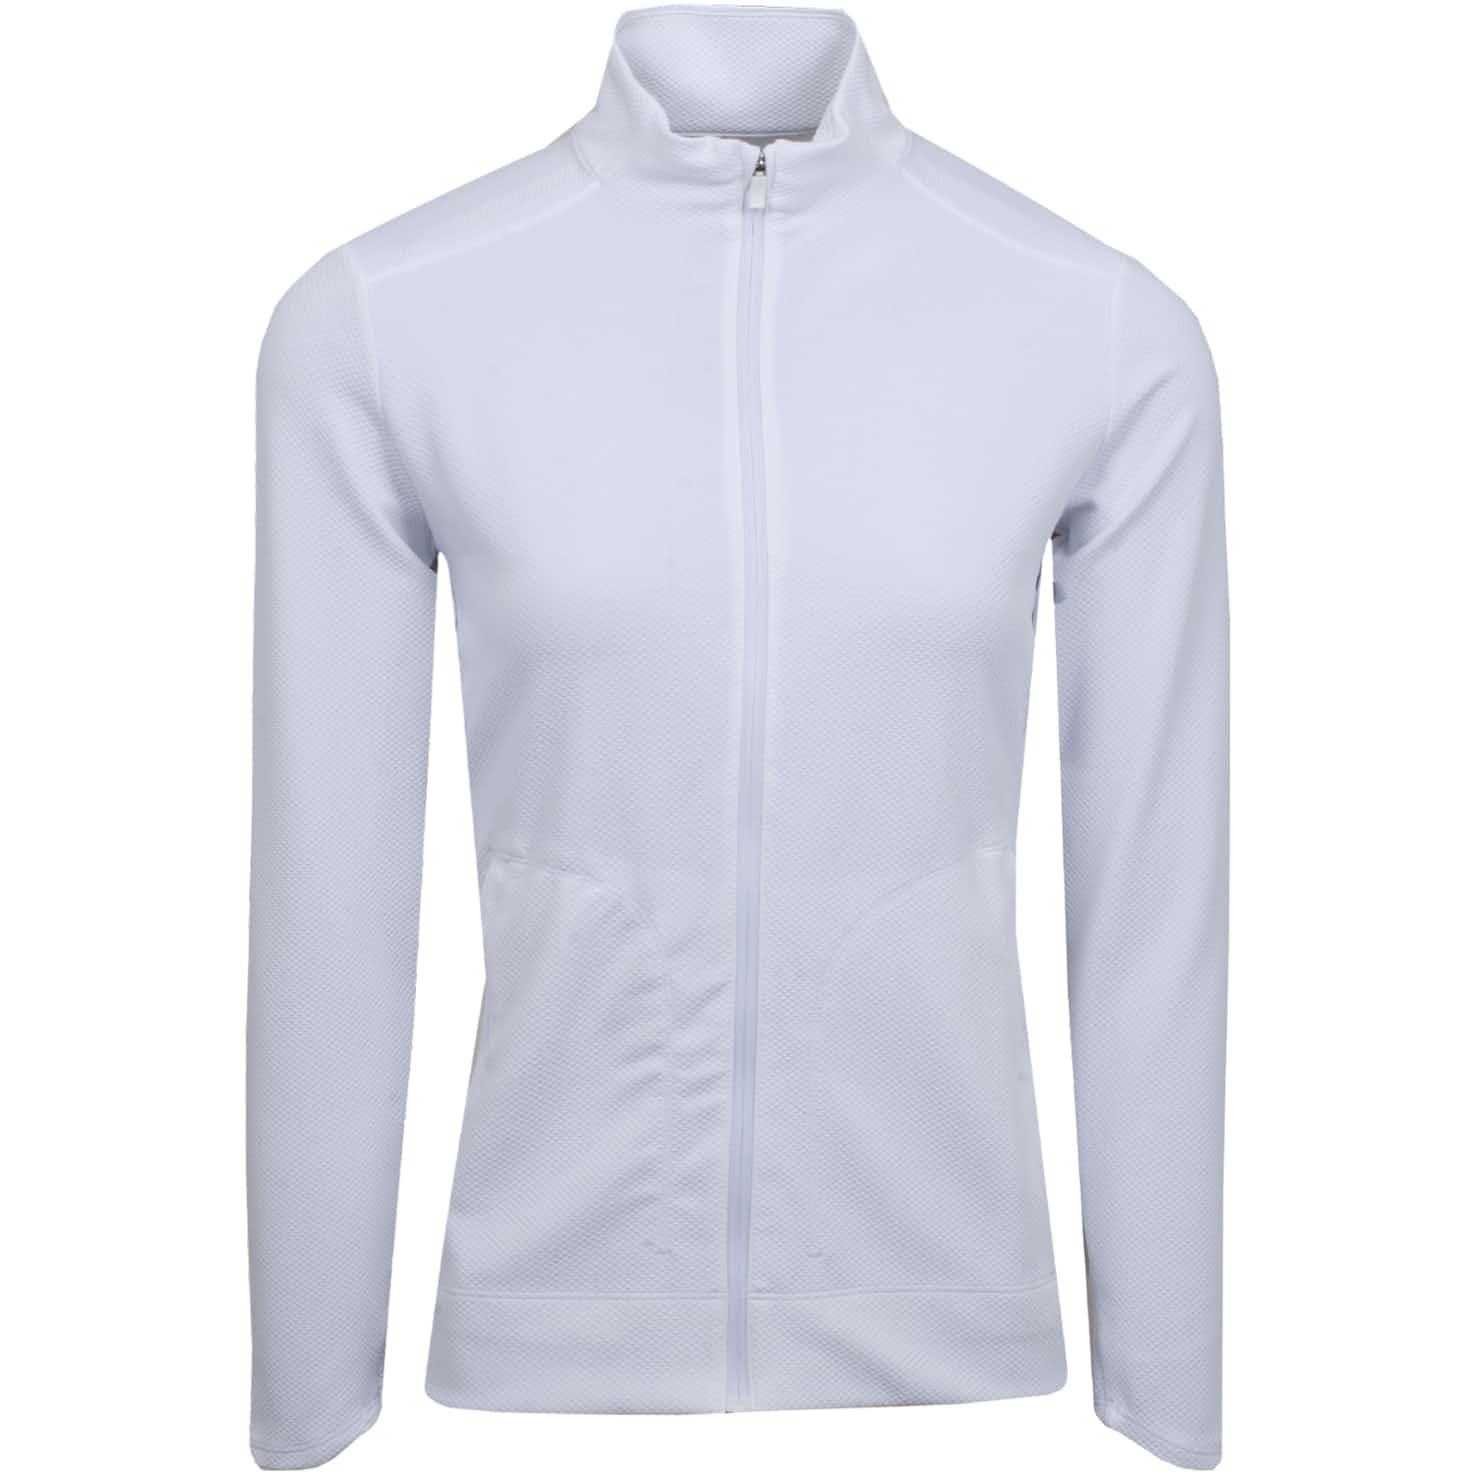 Womens Dry UV Full Zip Mid White - Summer 19